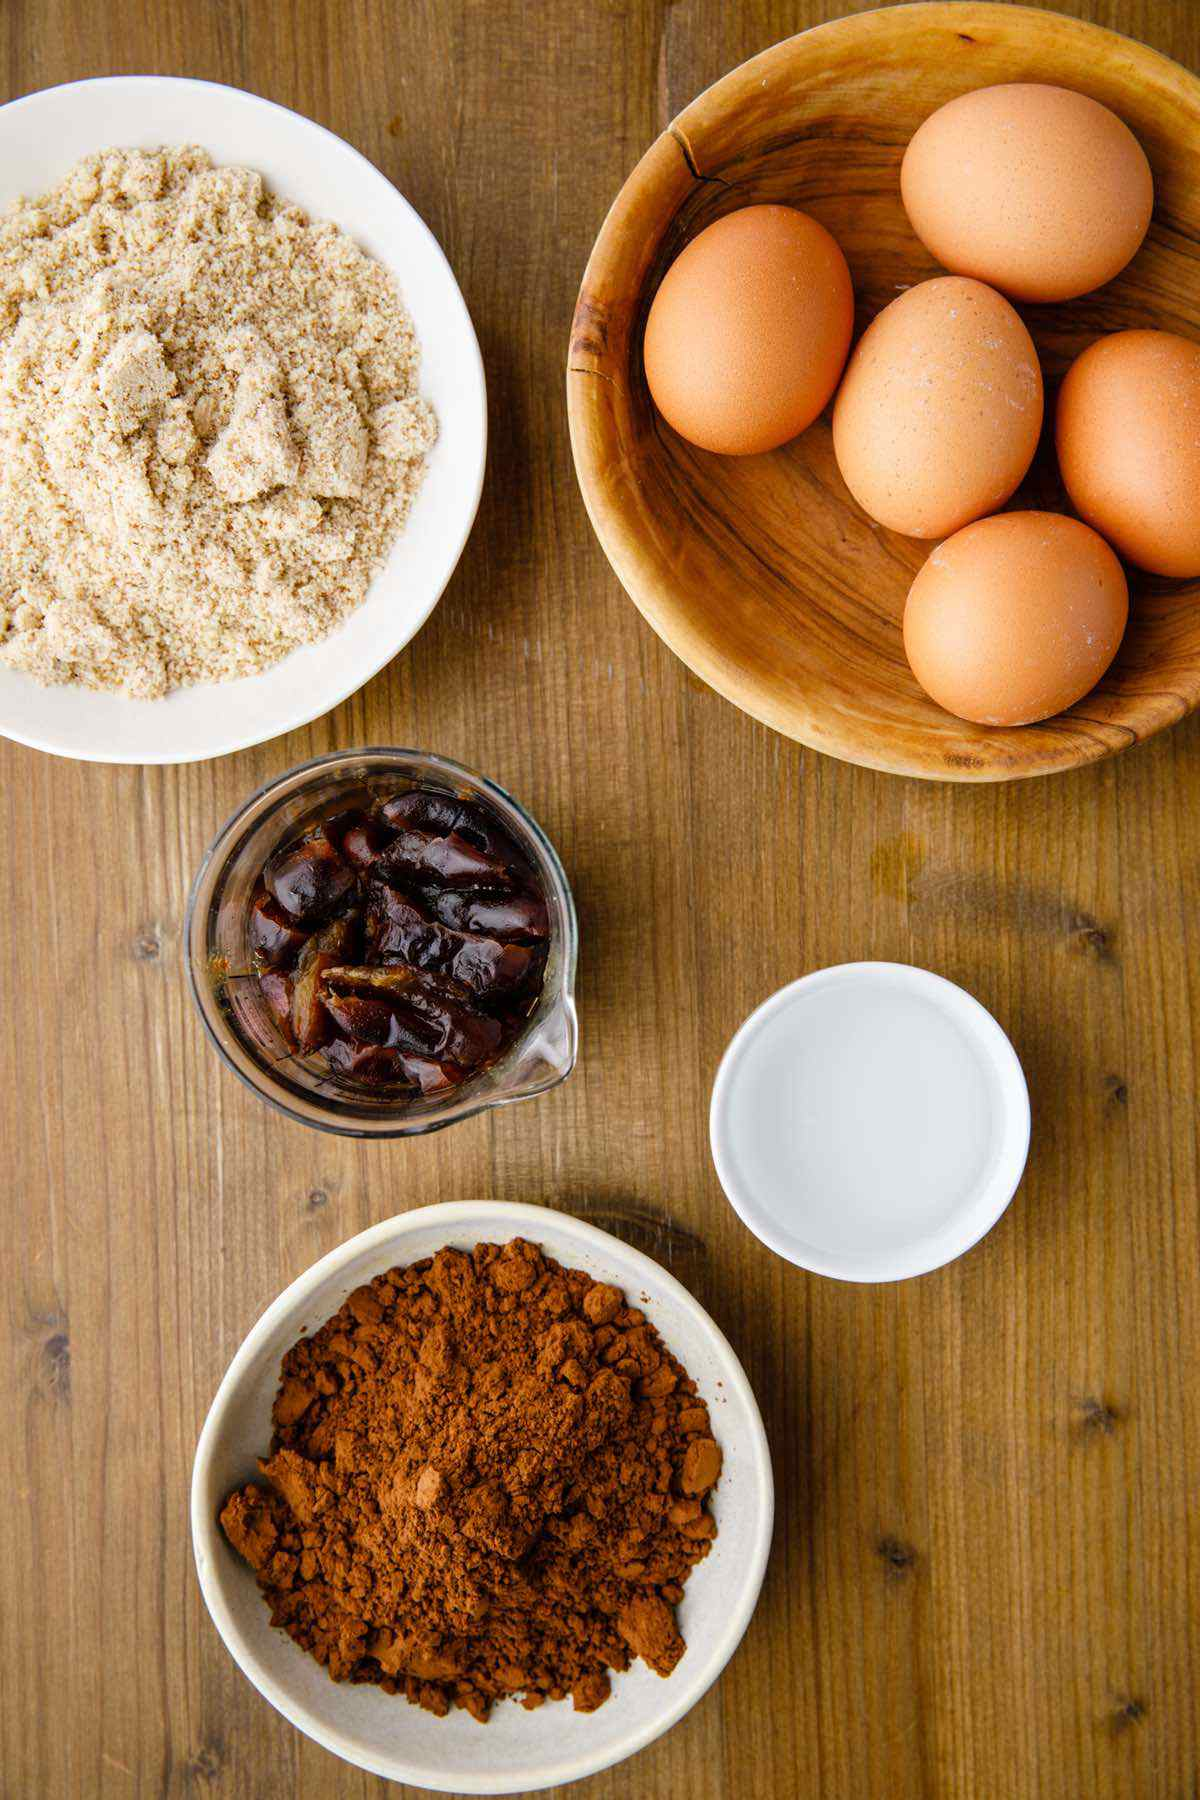 prepping ingredients for cake